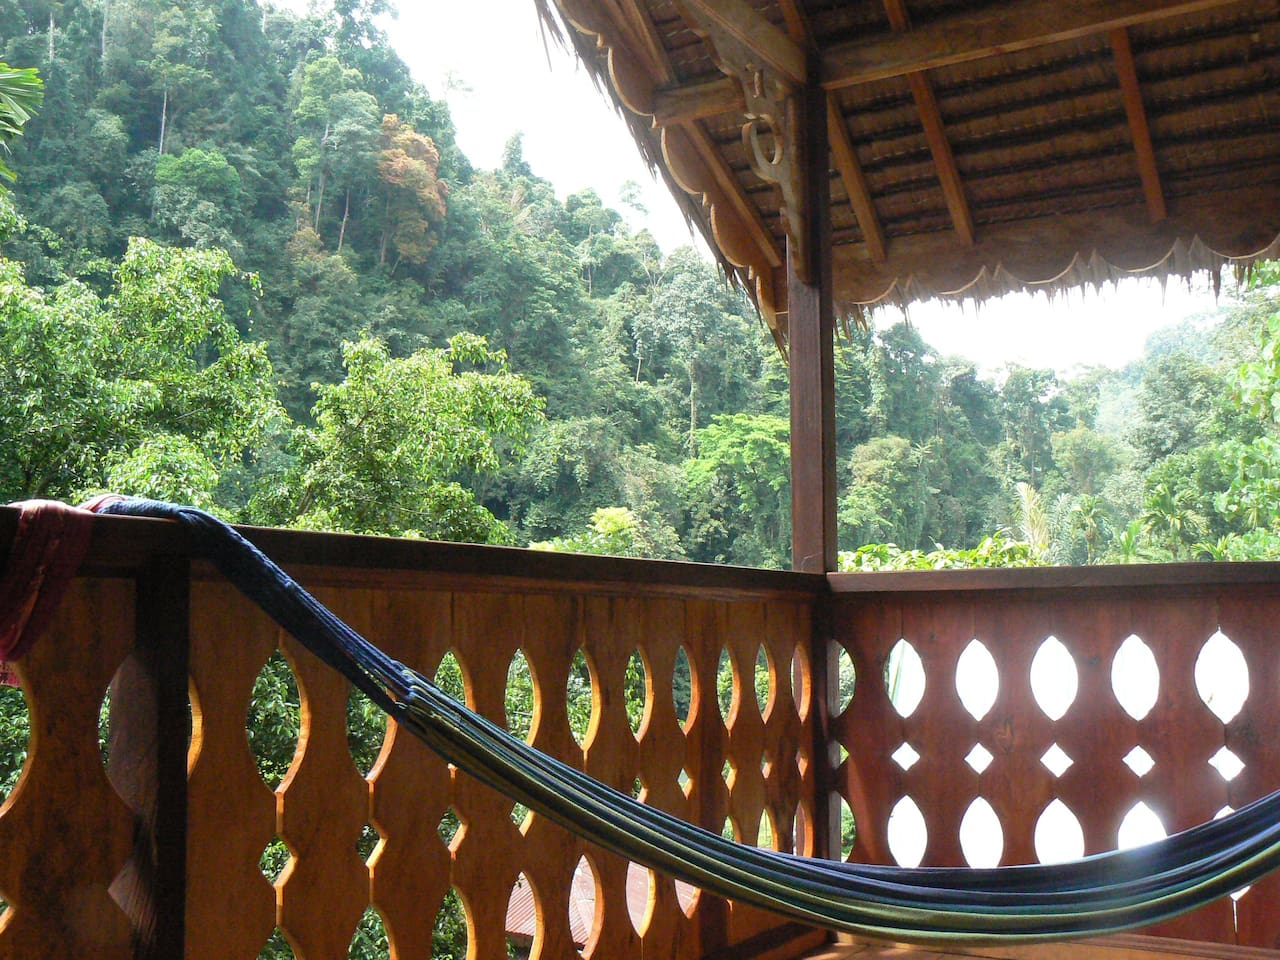 Chill out in the hammock of the treetop chalet.